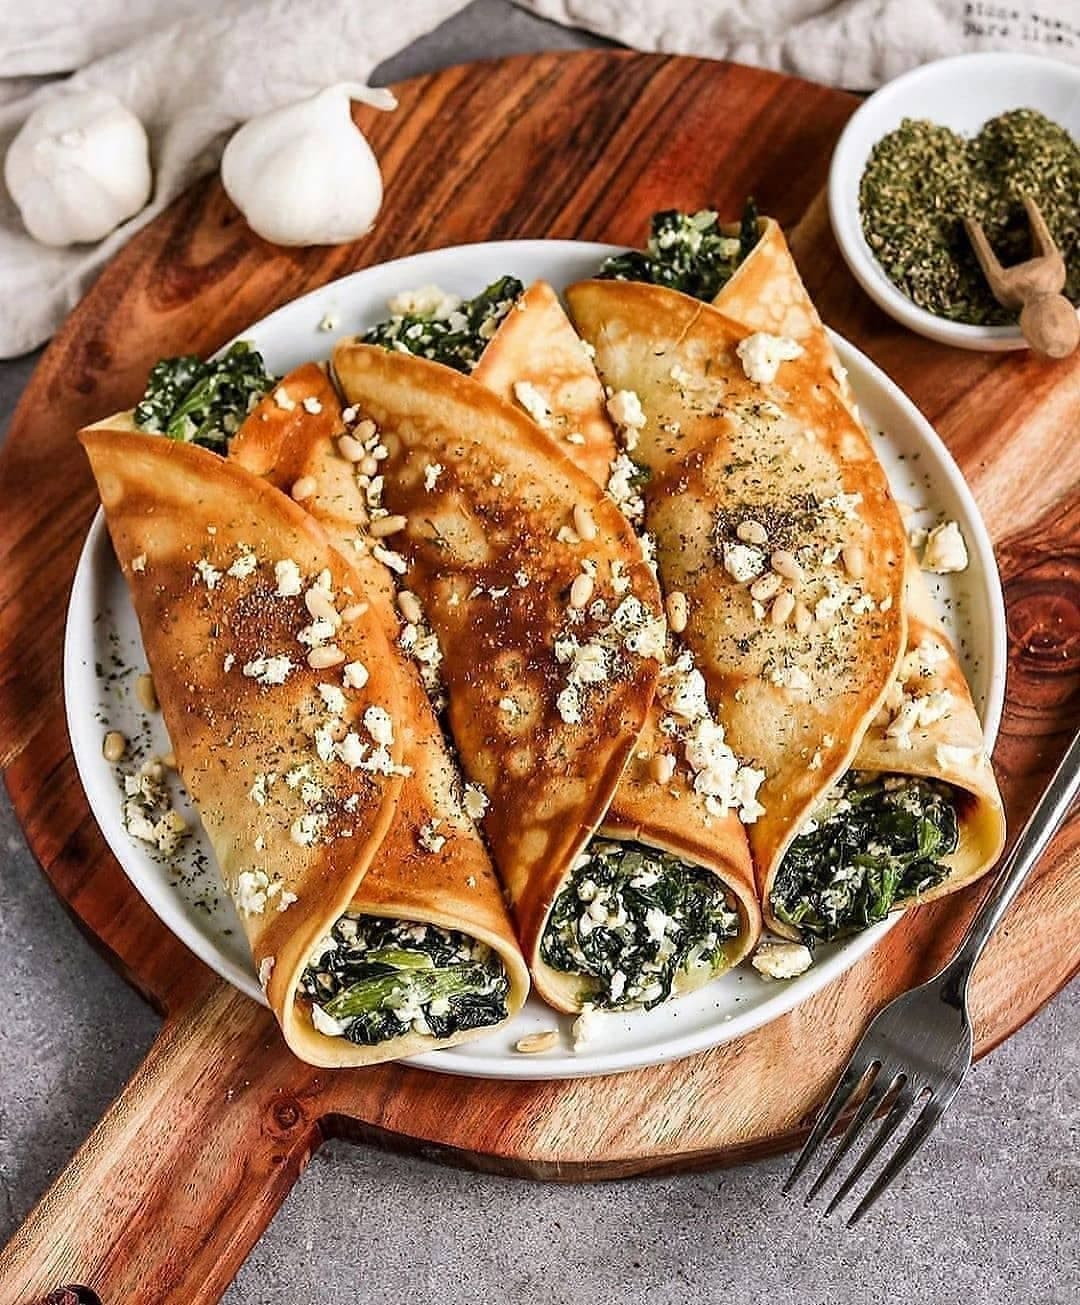 vegan oven baked filled crepes with spinach and feta display image be